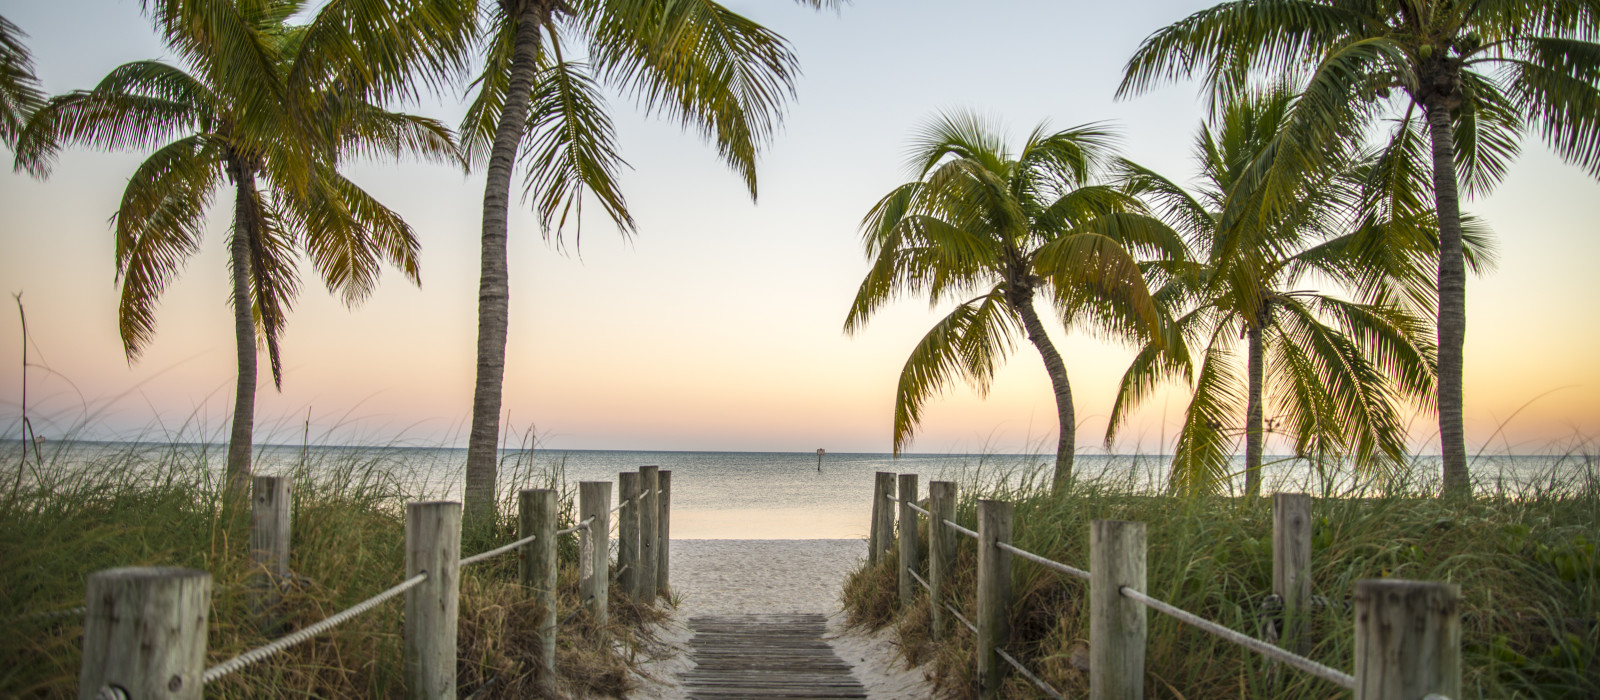 Key West Florida - Famous passage to the beach with palms, sunset and view on the ocean.